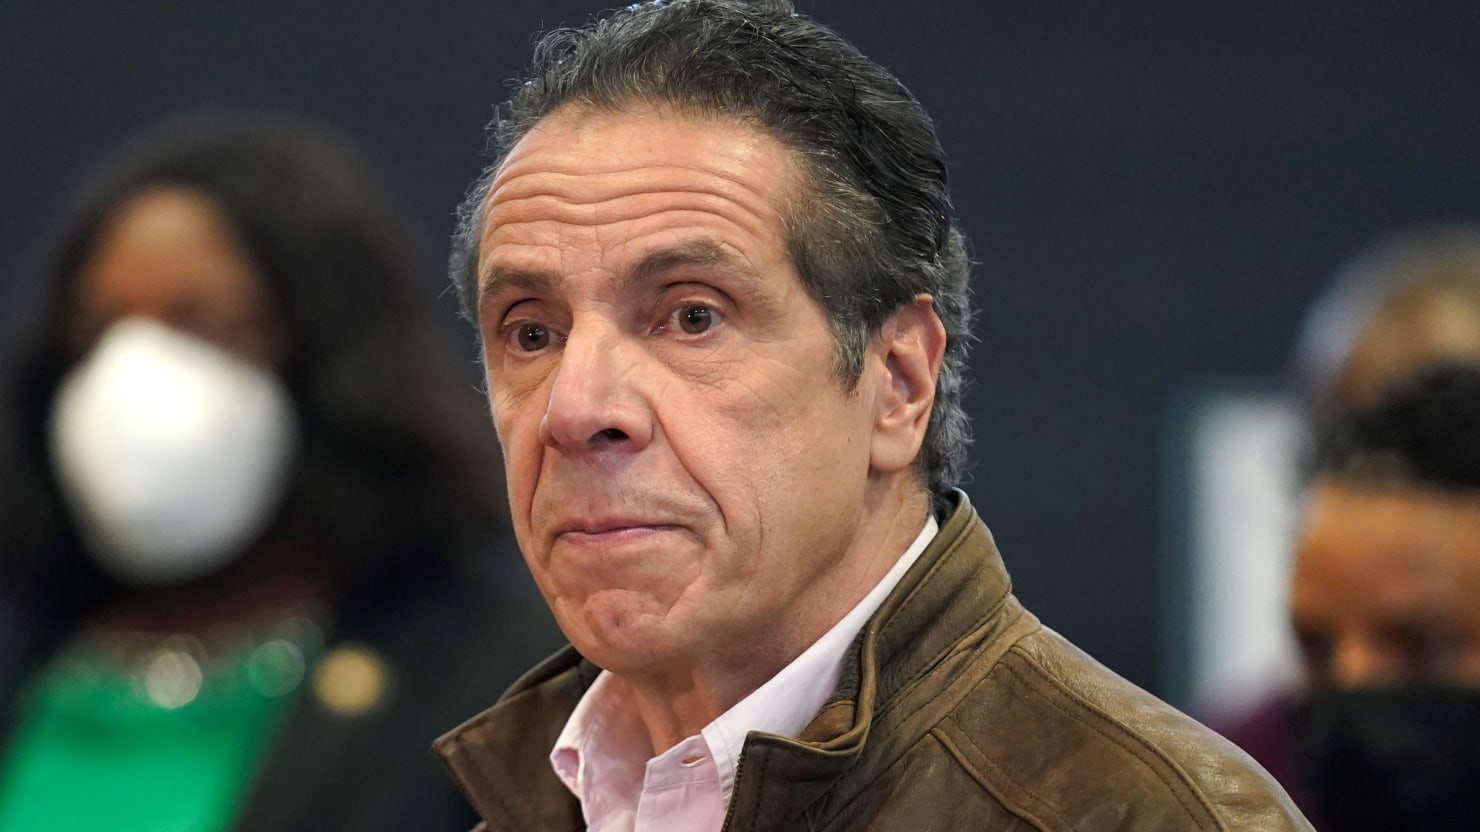 Third Woman Accuses Cuomo, Says He Asked to Kiss Her